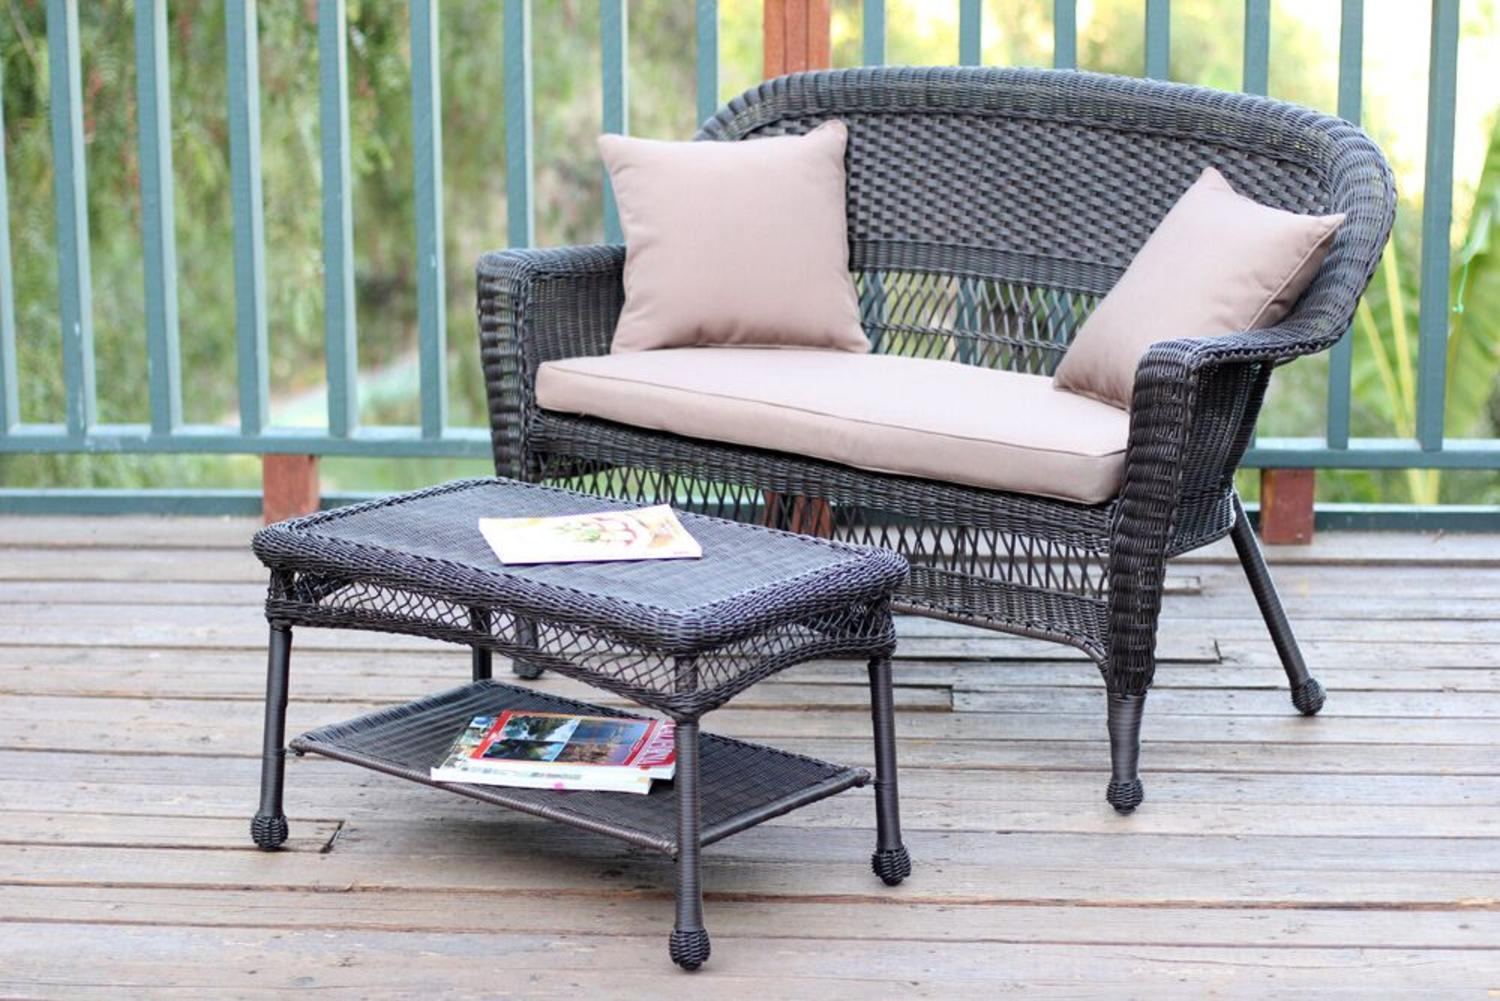 2-Piece Espresso Resin Wicker Patio Loveseat and Coffee Table Set Brown Cushion by CC Outdoor Living